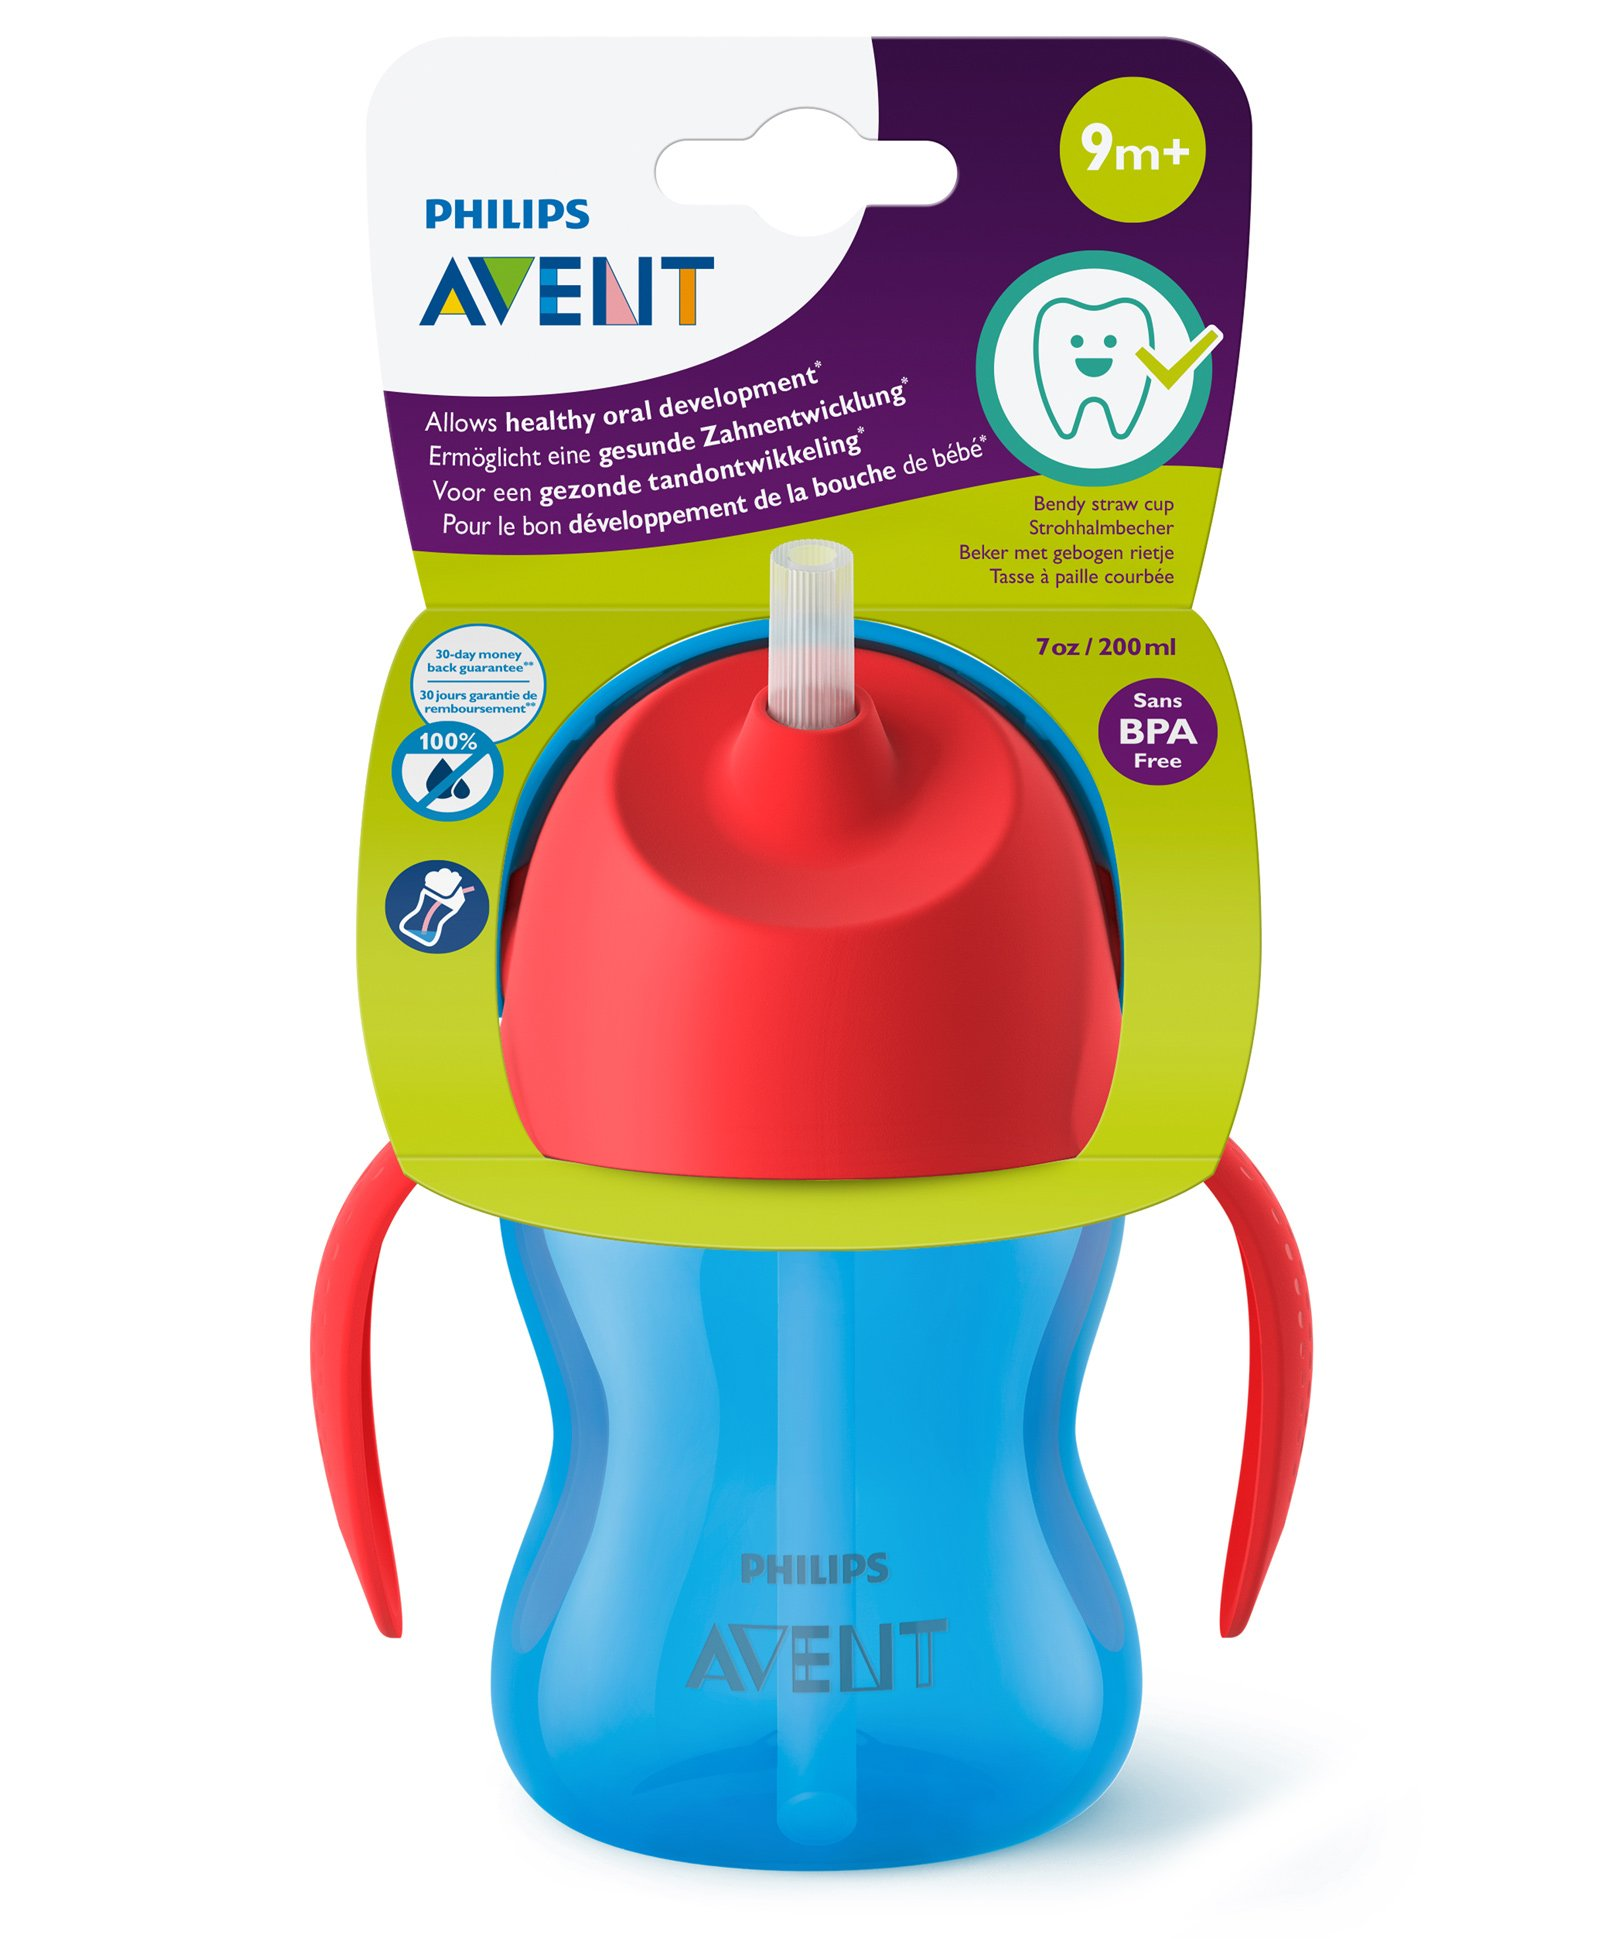 Baby Sippy Cups Sipper Bottles Online India Buy At Sleek Laundry Travel Wash Tube 100 Ml Avent Bendy Straw Cup Red Sky Blue 200